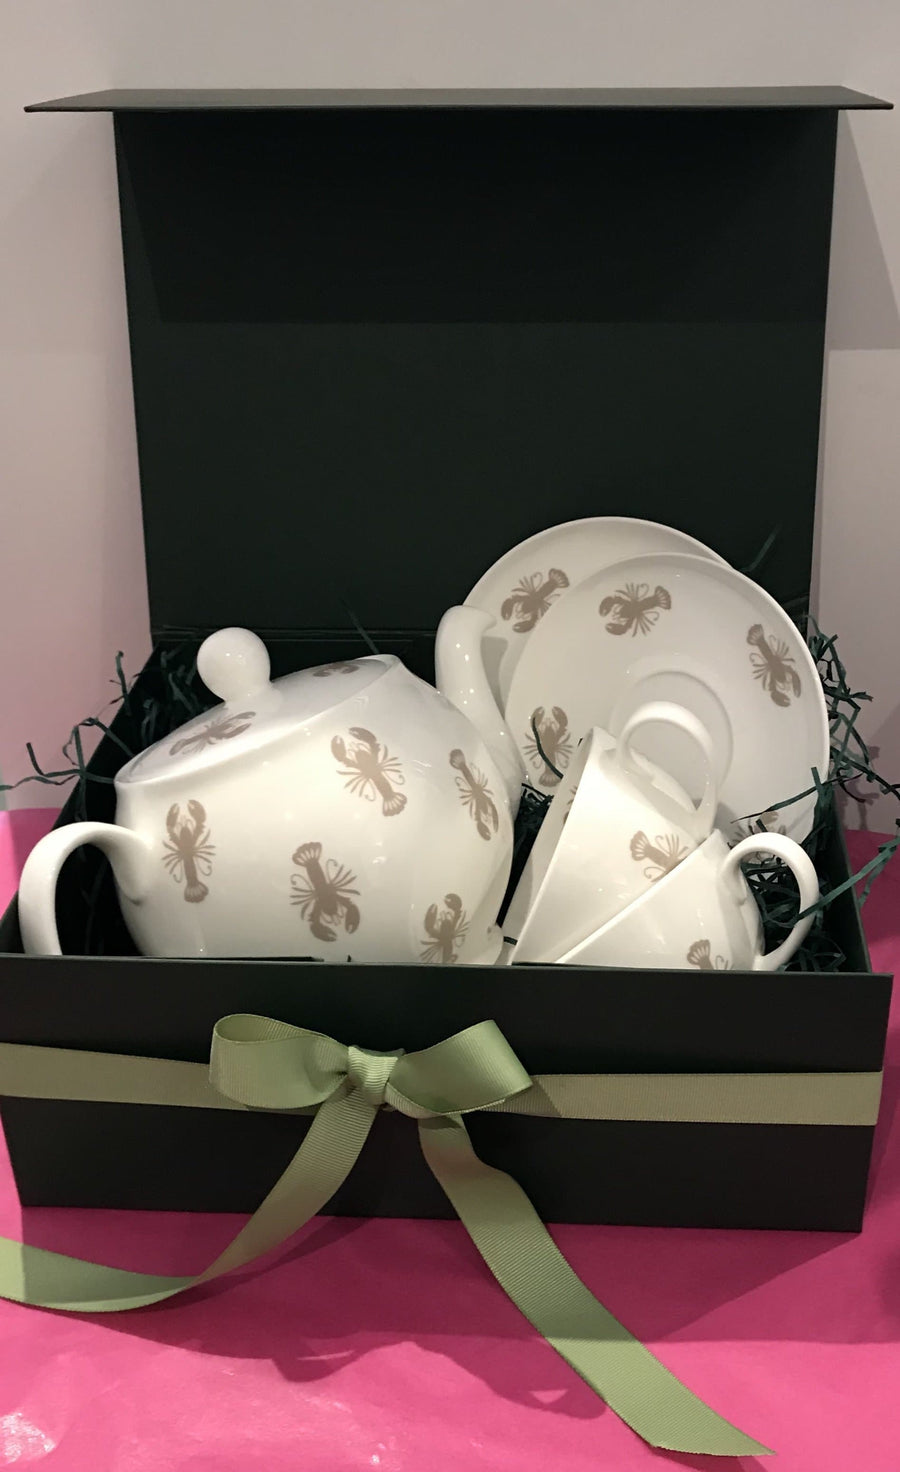 Gift Hamper For The Posh Tea Lover - Aurina Ltd